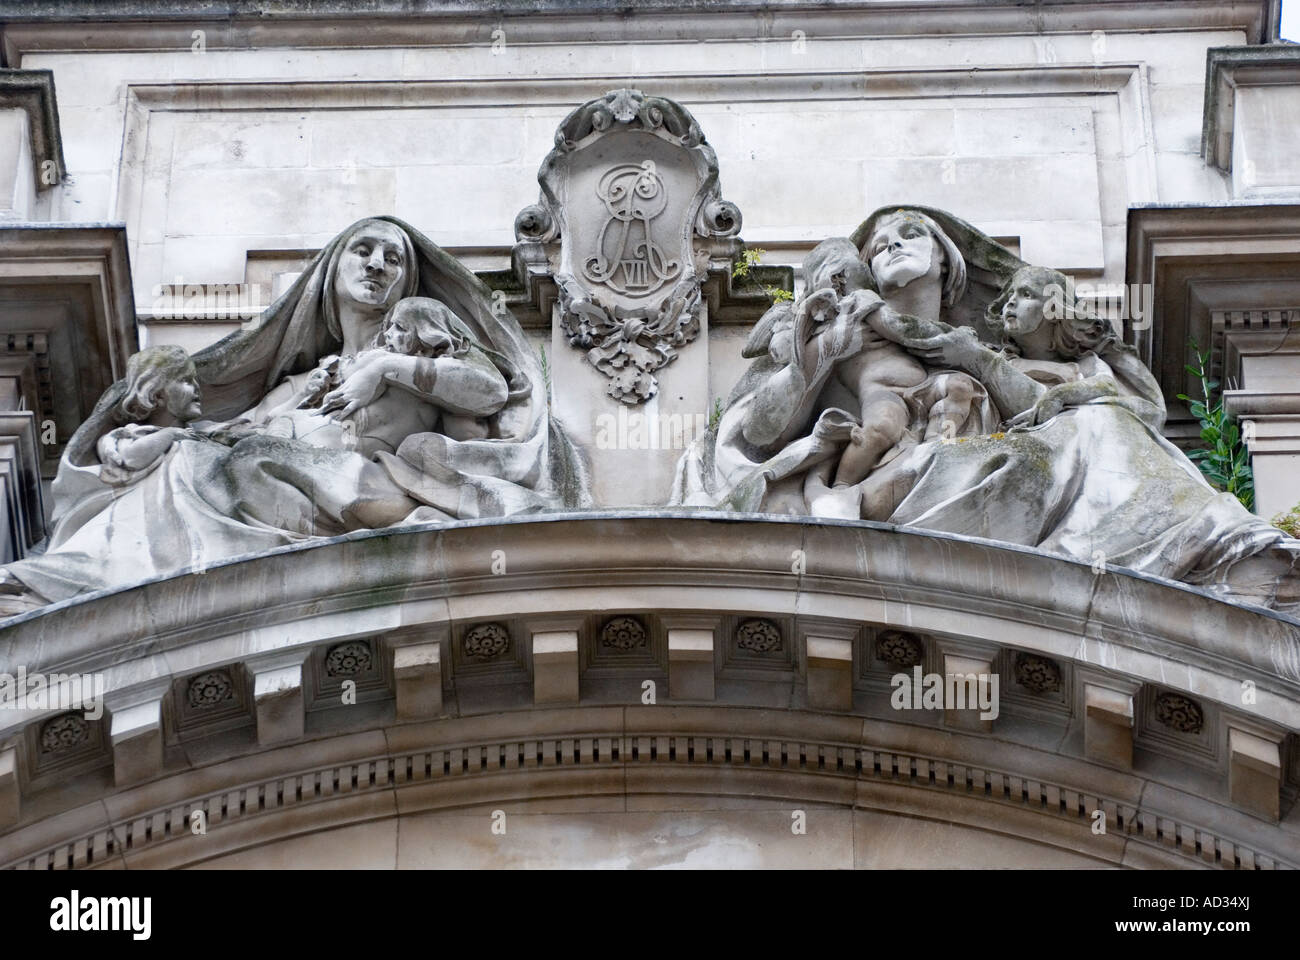 Sculpture by Alfred Drury on Old War Office Building in Horse Guards Avenue, London, England, UK - Stock Image